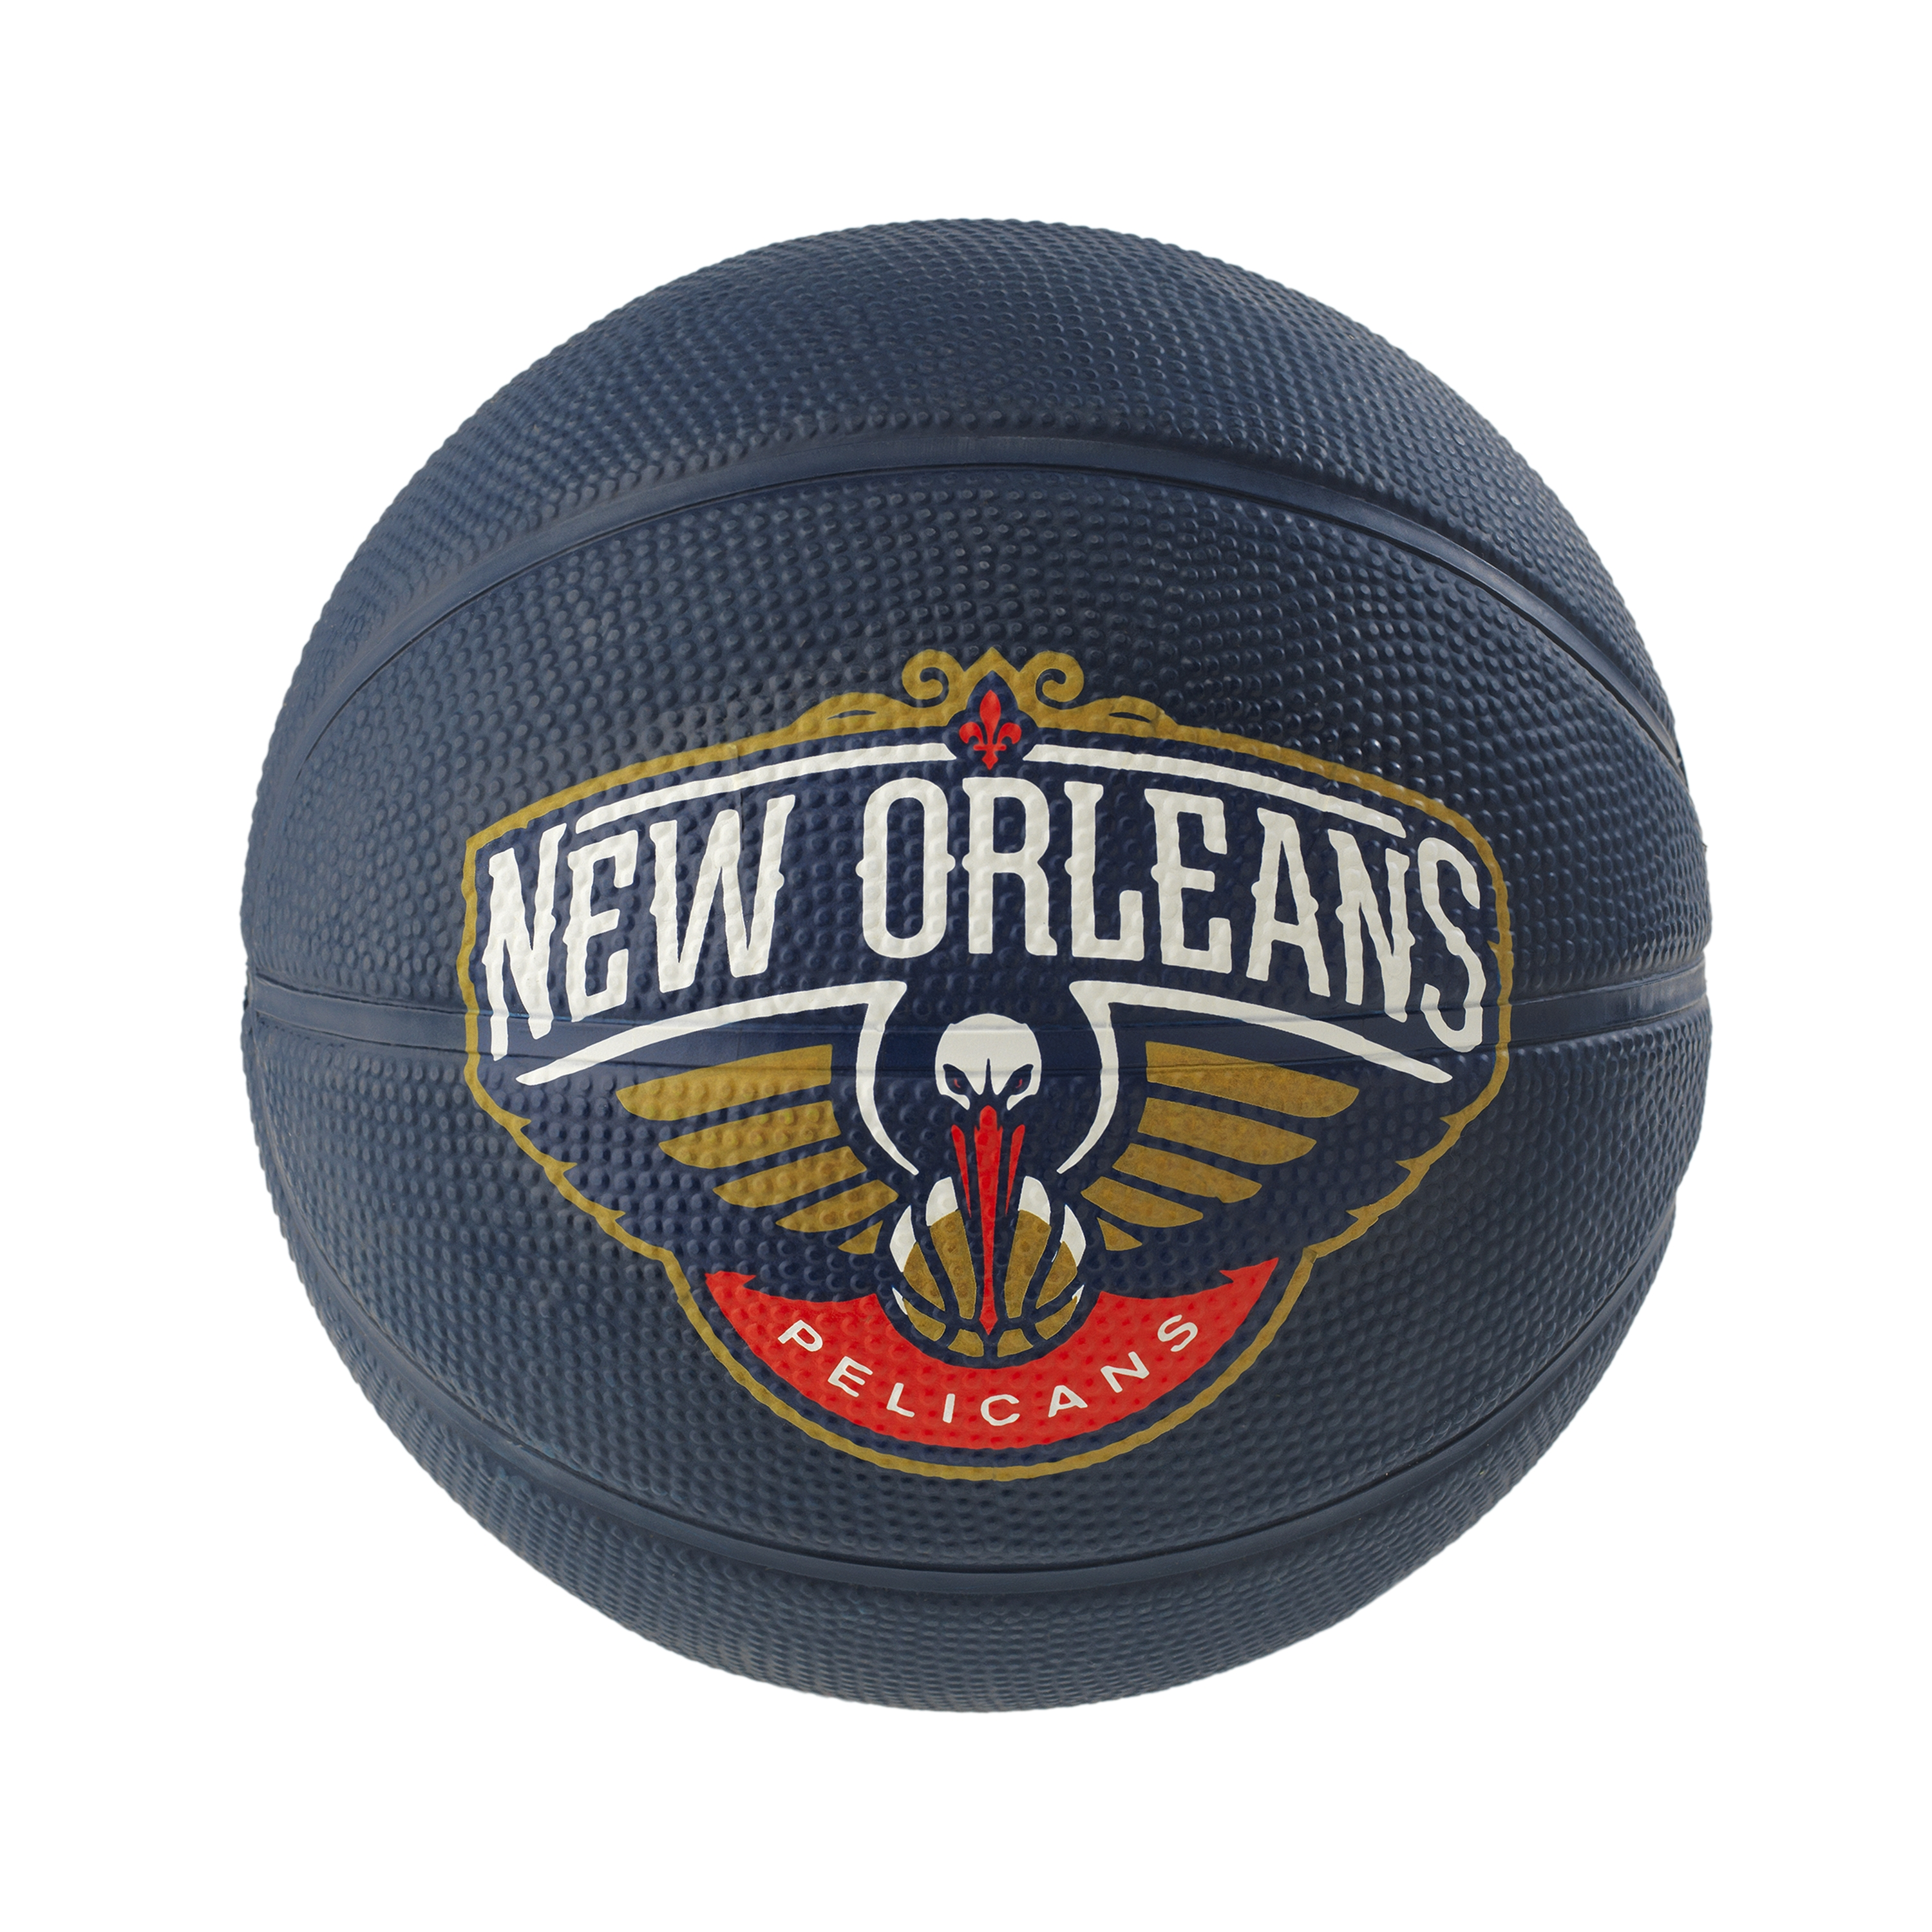 Spalding NBA New Orleans Pelicans Team Mini